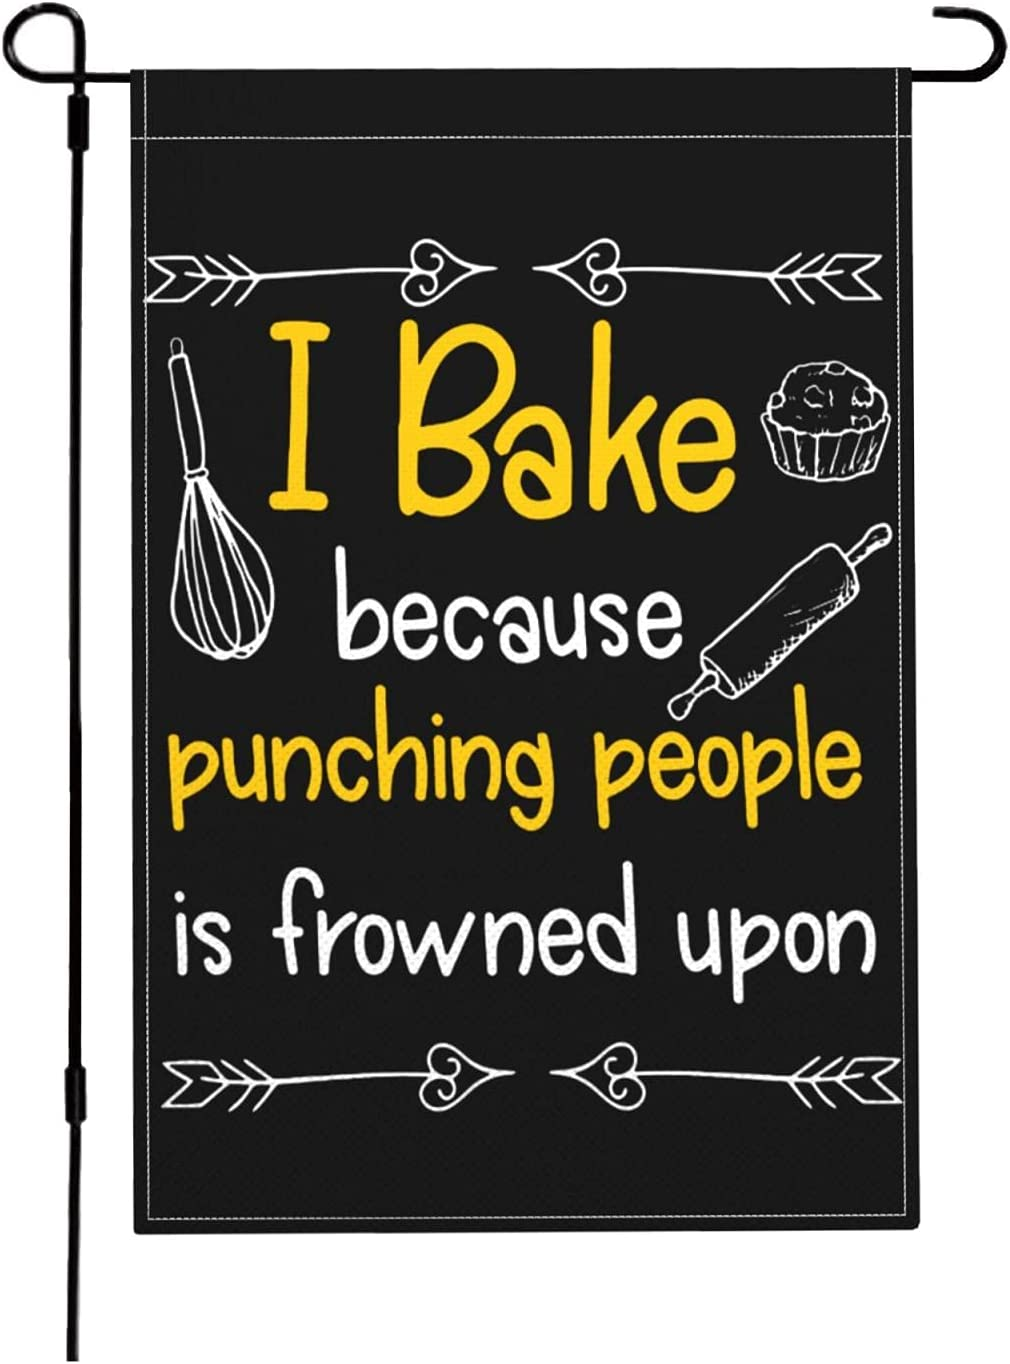 I Bake Because Punching People is Frowned Upon-1 Garden Flag 18x12 Inch, Double Sided Outdoor Yard Garden Flag for Wedding Party House Home Decor